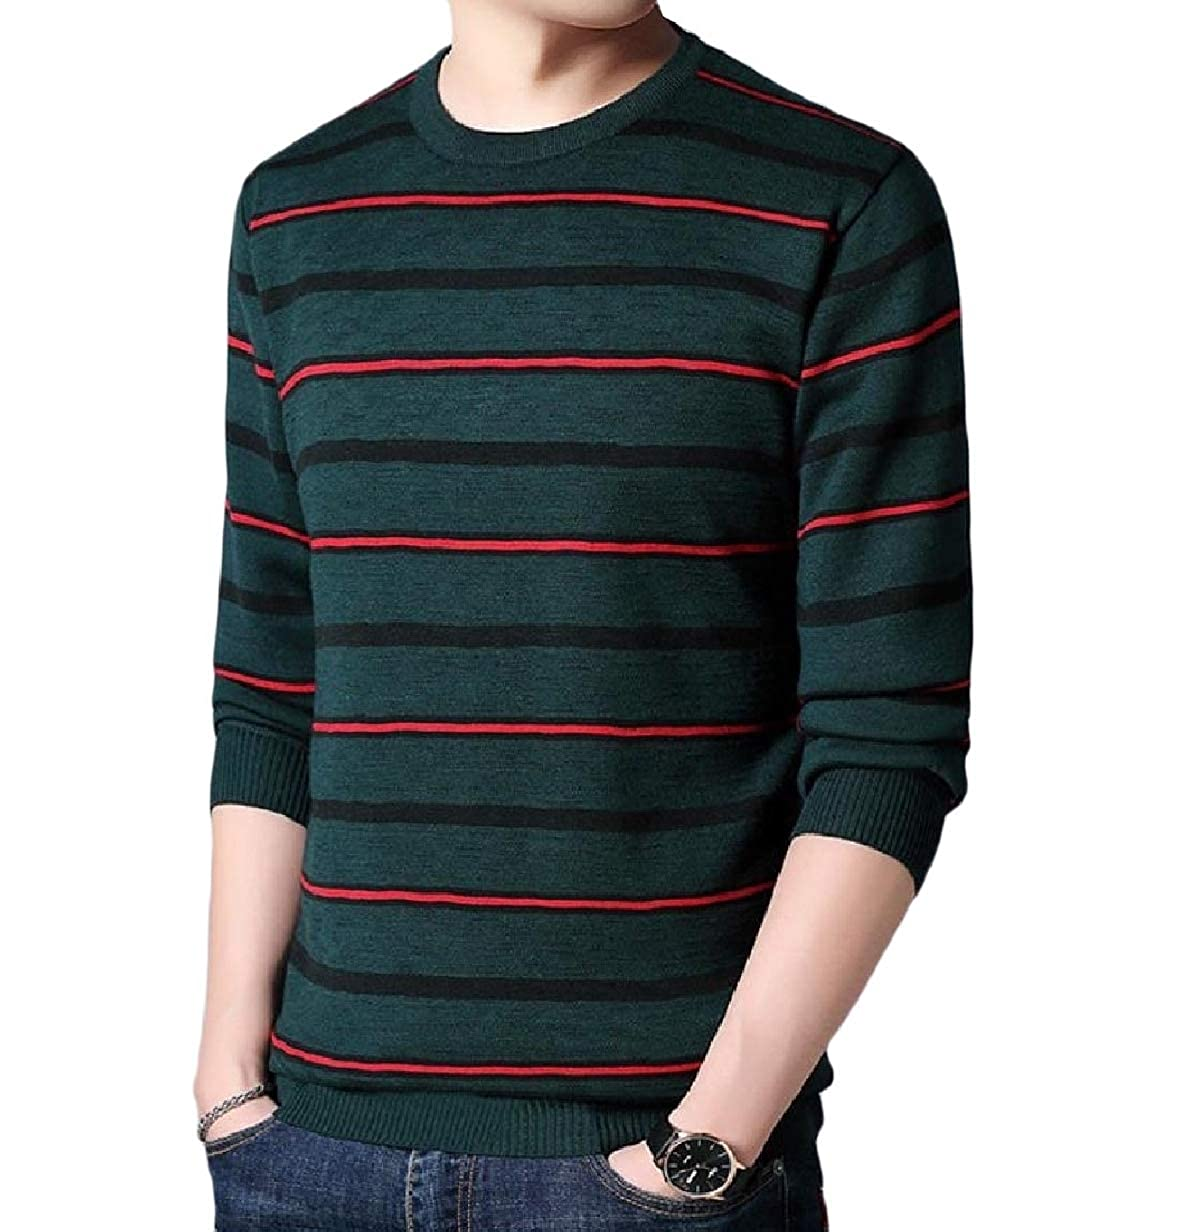 VITryst-Men Thicken Classic Plus Size Knit Slim Stripes Pullover Sweaters